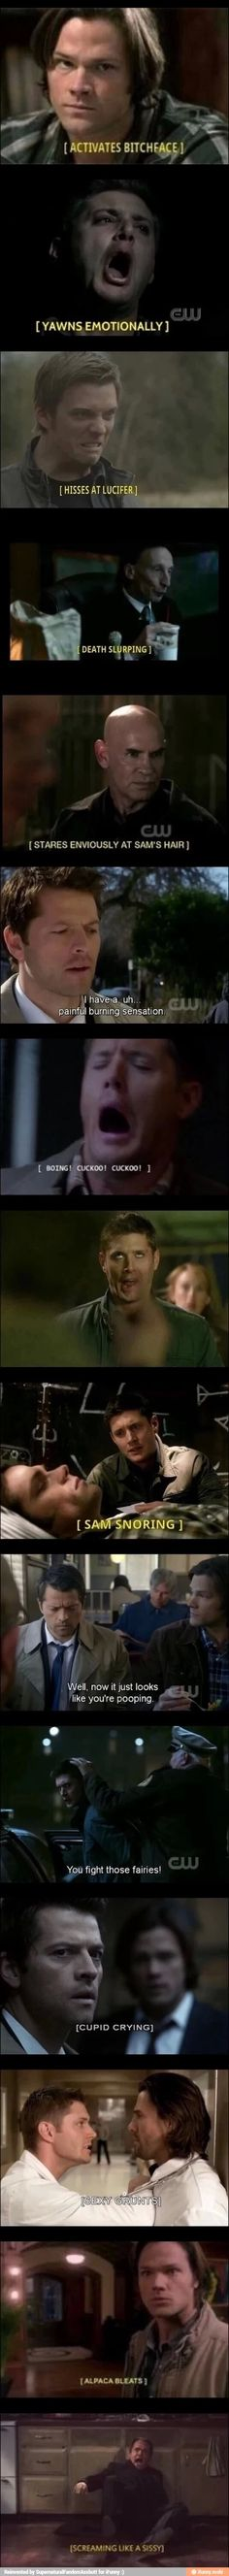 I showed my brother a few of these… and he doesn't watch SPN… but still found them ridiculous yet humorous.